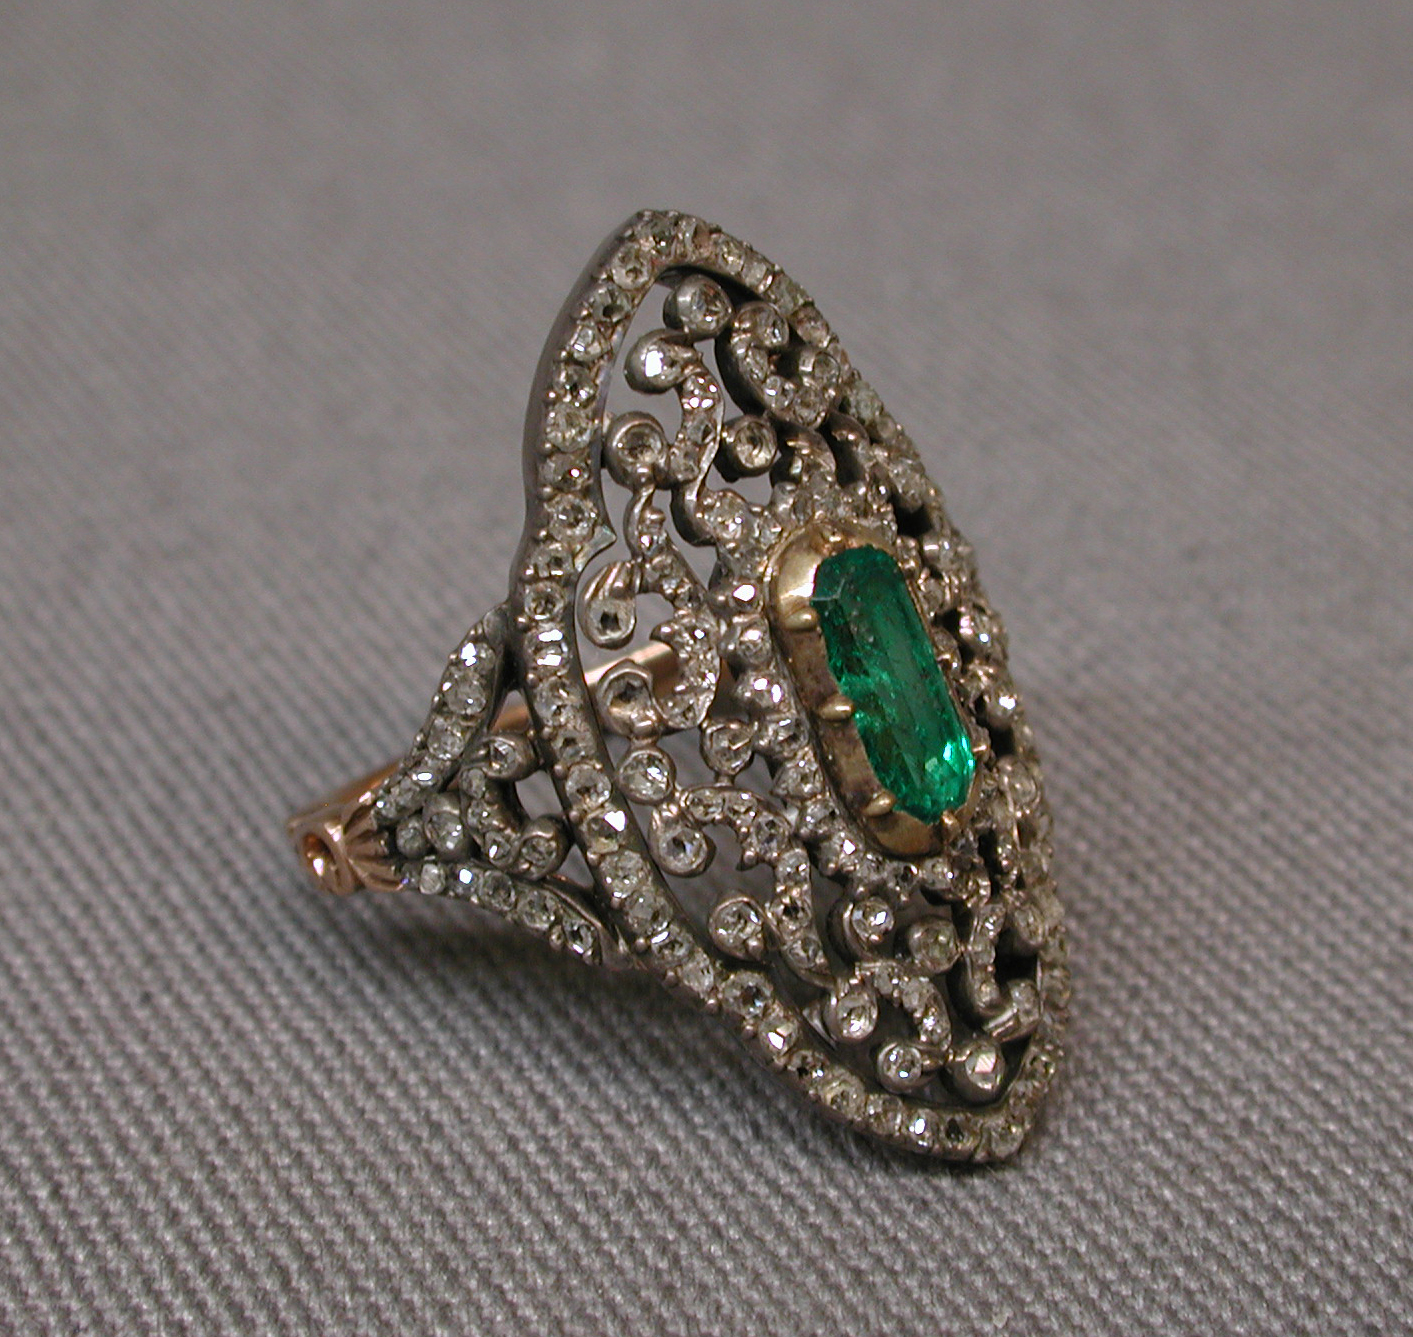 Diamond filigree ring with emerald in the center